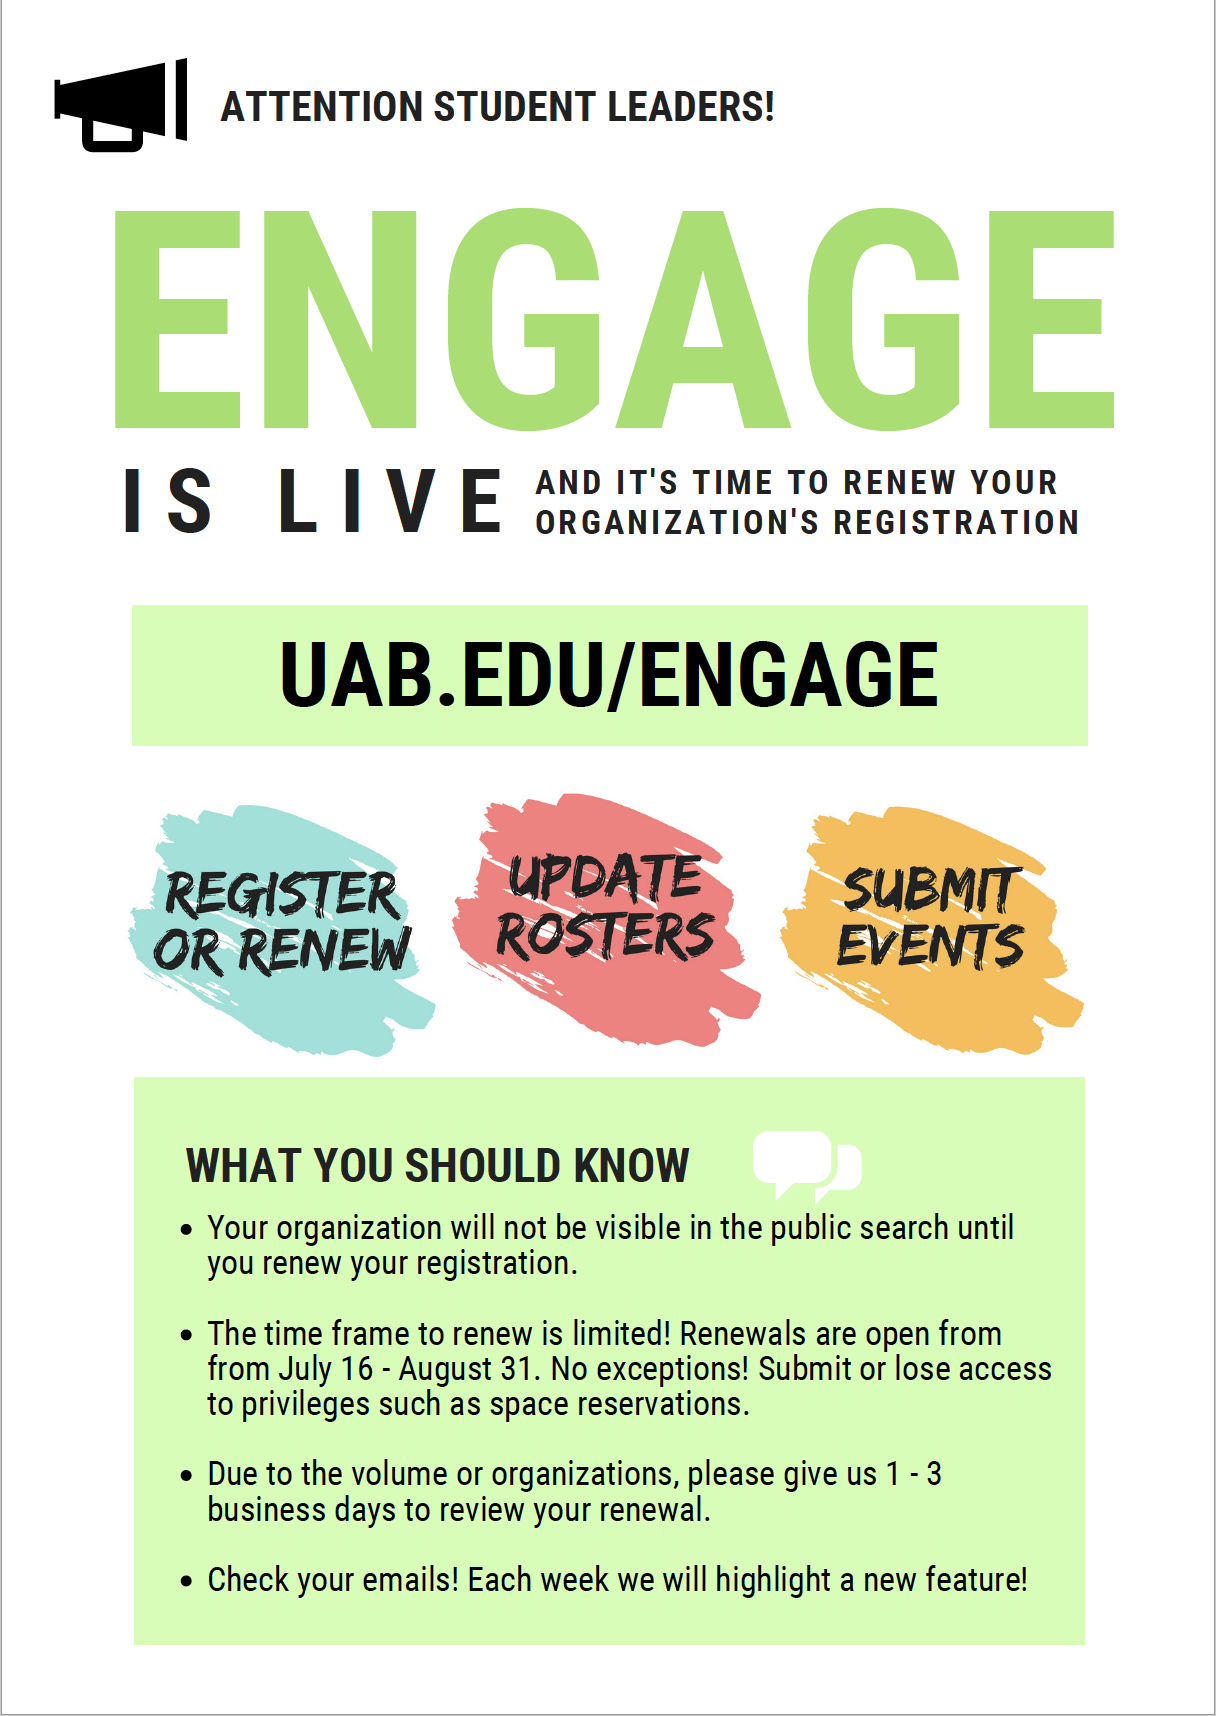 Engage is Live